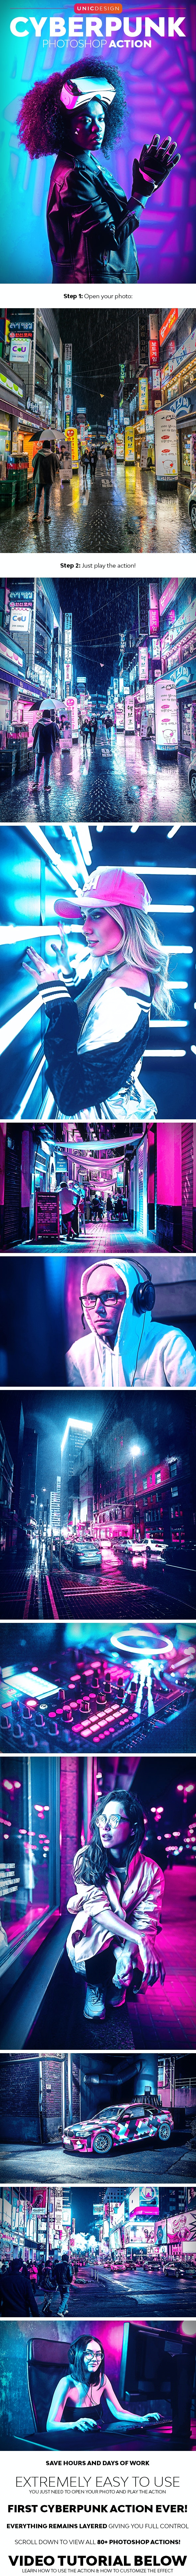 CyberPunk Photoshop Action - Photo Effects Actions